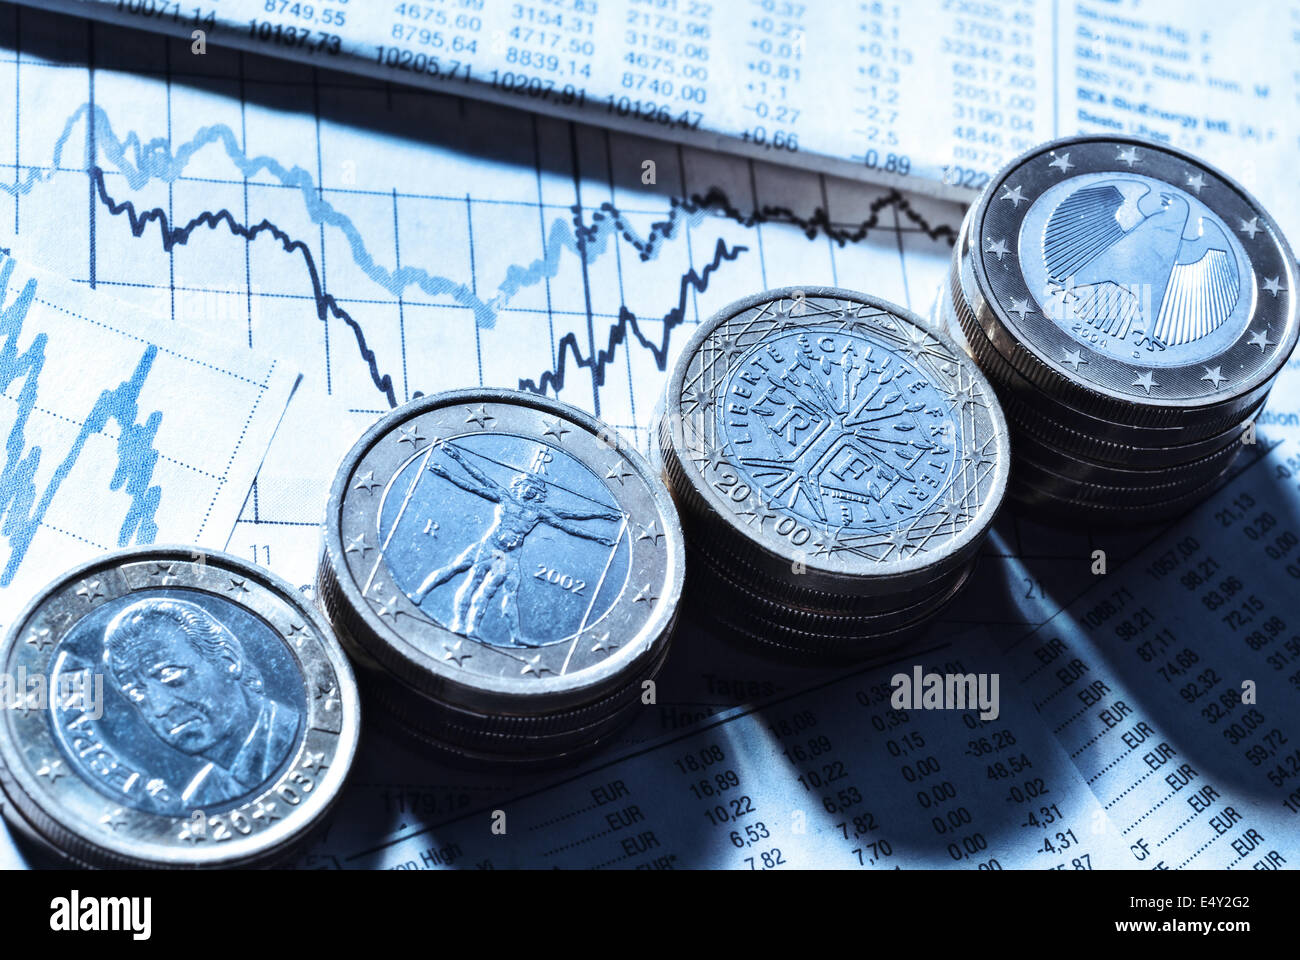 Euro coins and currency exchange rates - Stock Image